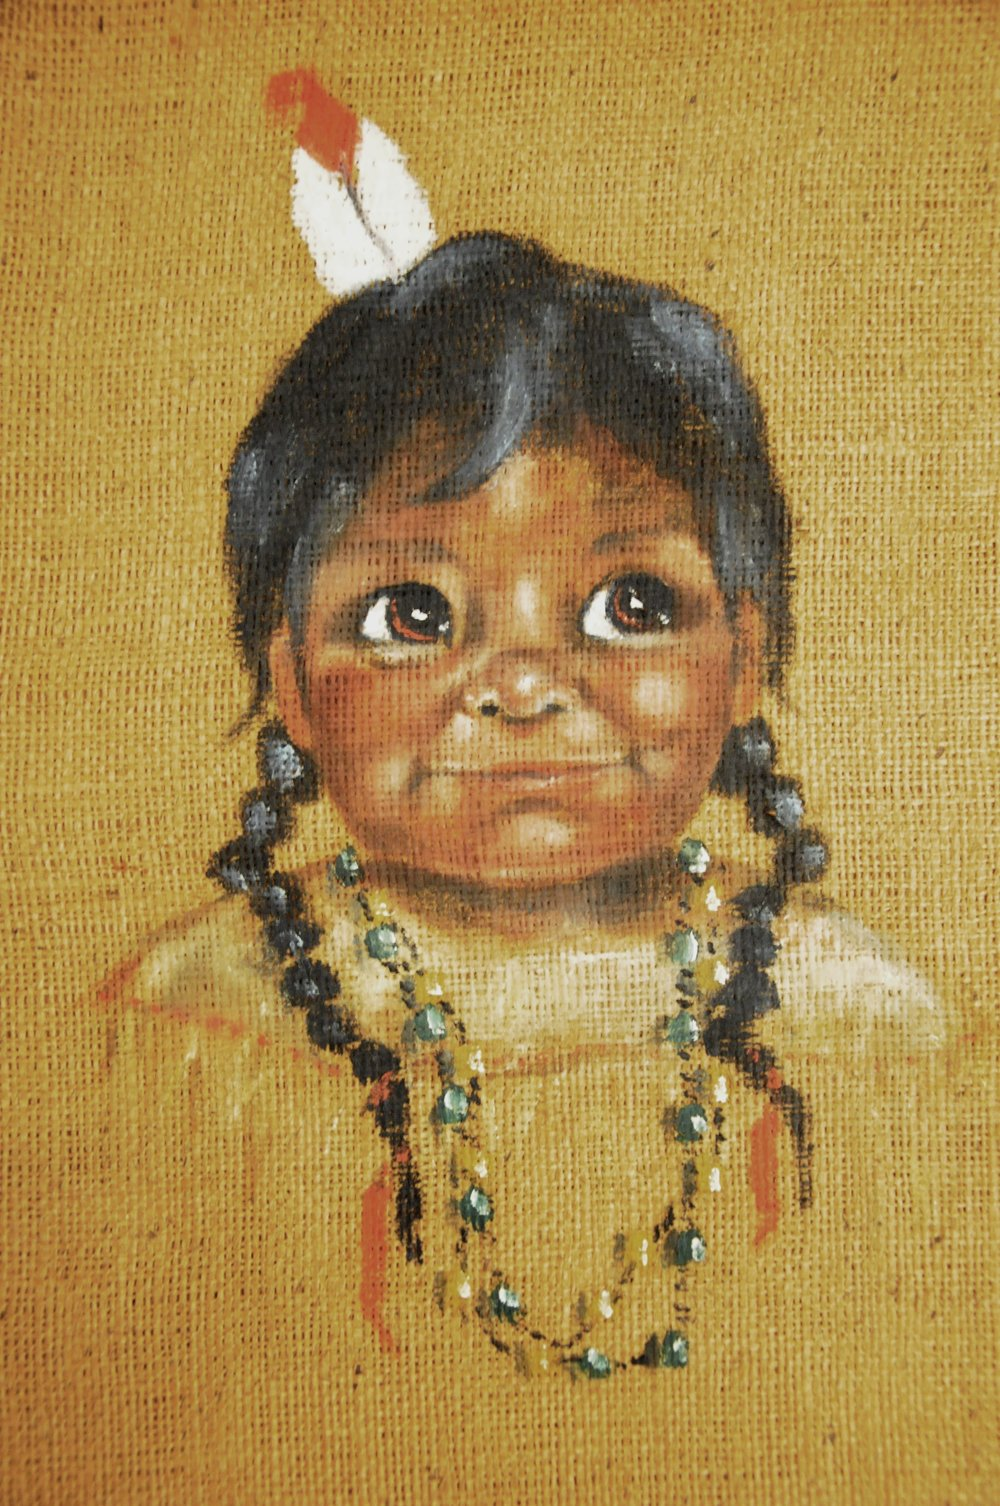 Untitled (Happy Child), c. 1960s, Fran Jenkins, acrylic on burlap